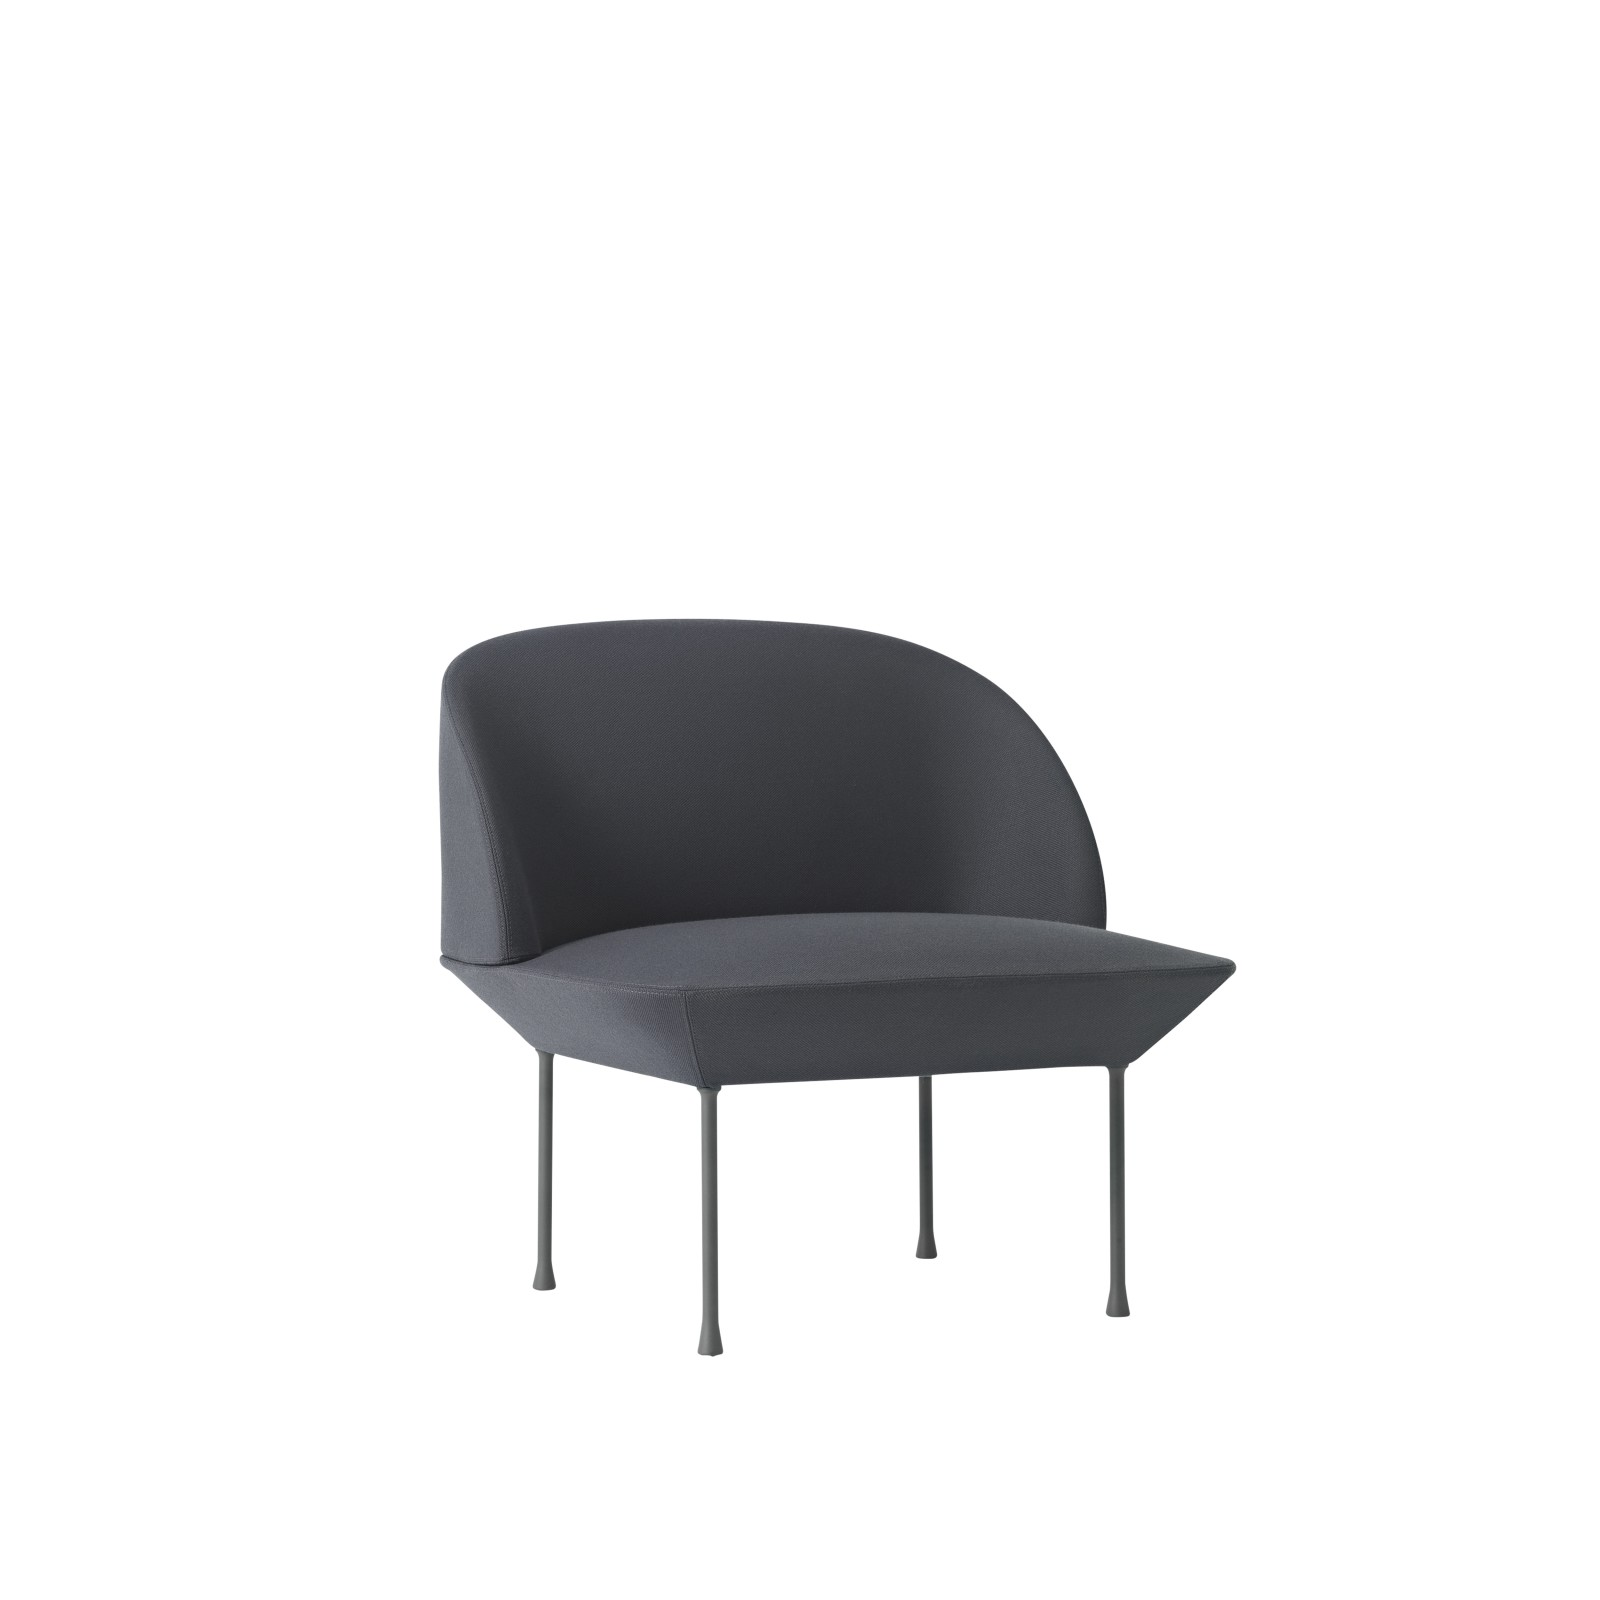 Oslo Lounge Chair oslo lounge chair Skai Parotega NF black